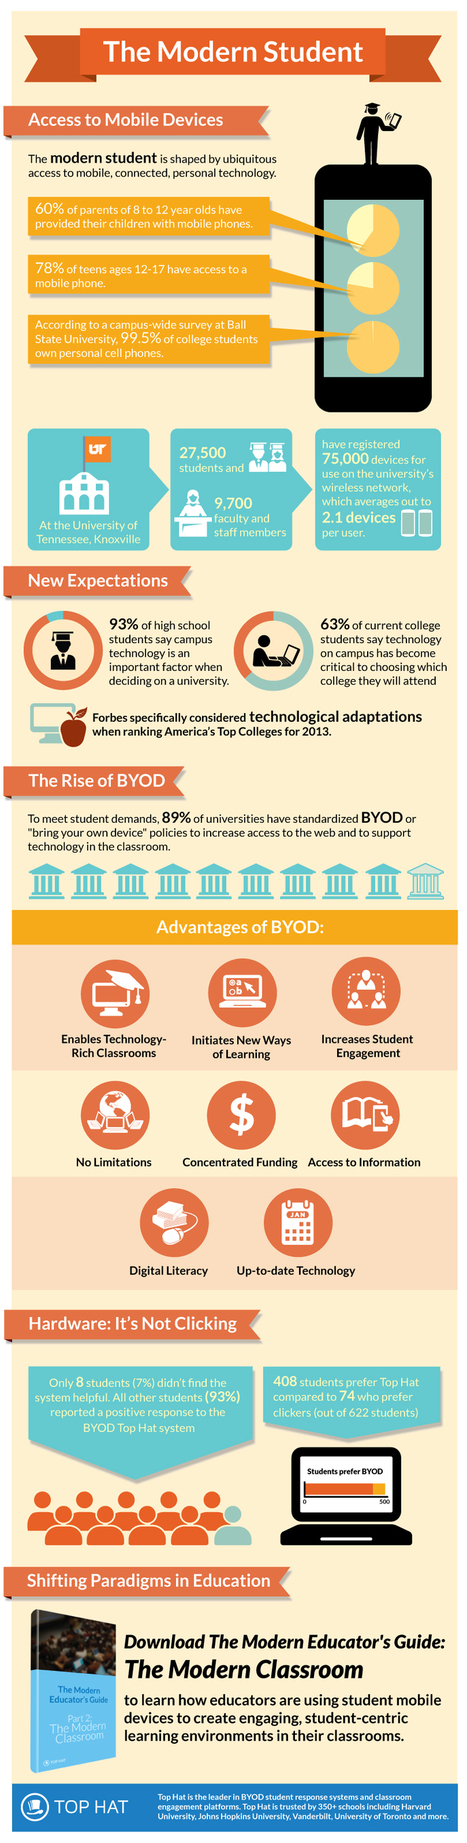 The Modern Student Infographic | Social Media: Beyond Friending | Scoop.it